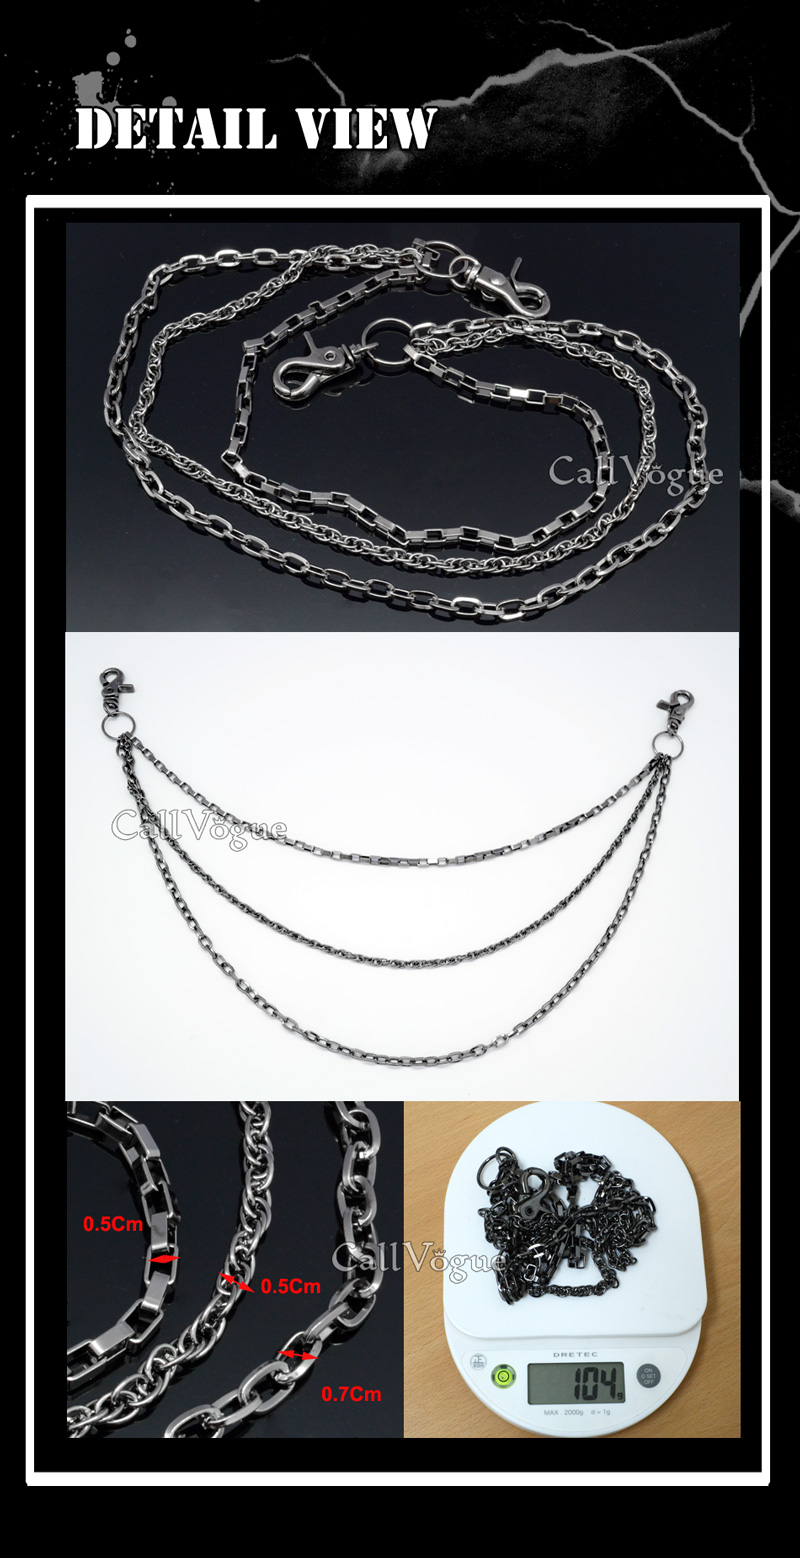 Wallet chains for Men women 3 ROW SQUARE MULTI RING LINKED WALLET CHAIN